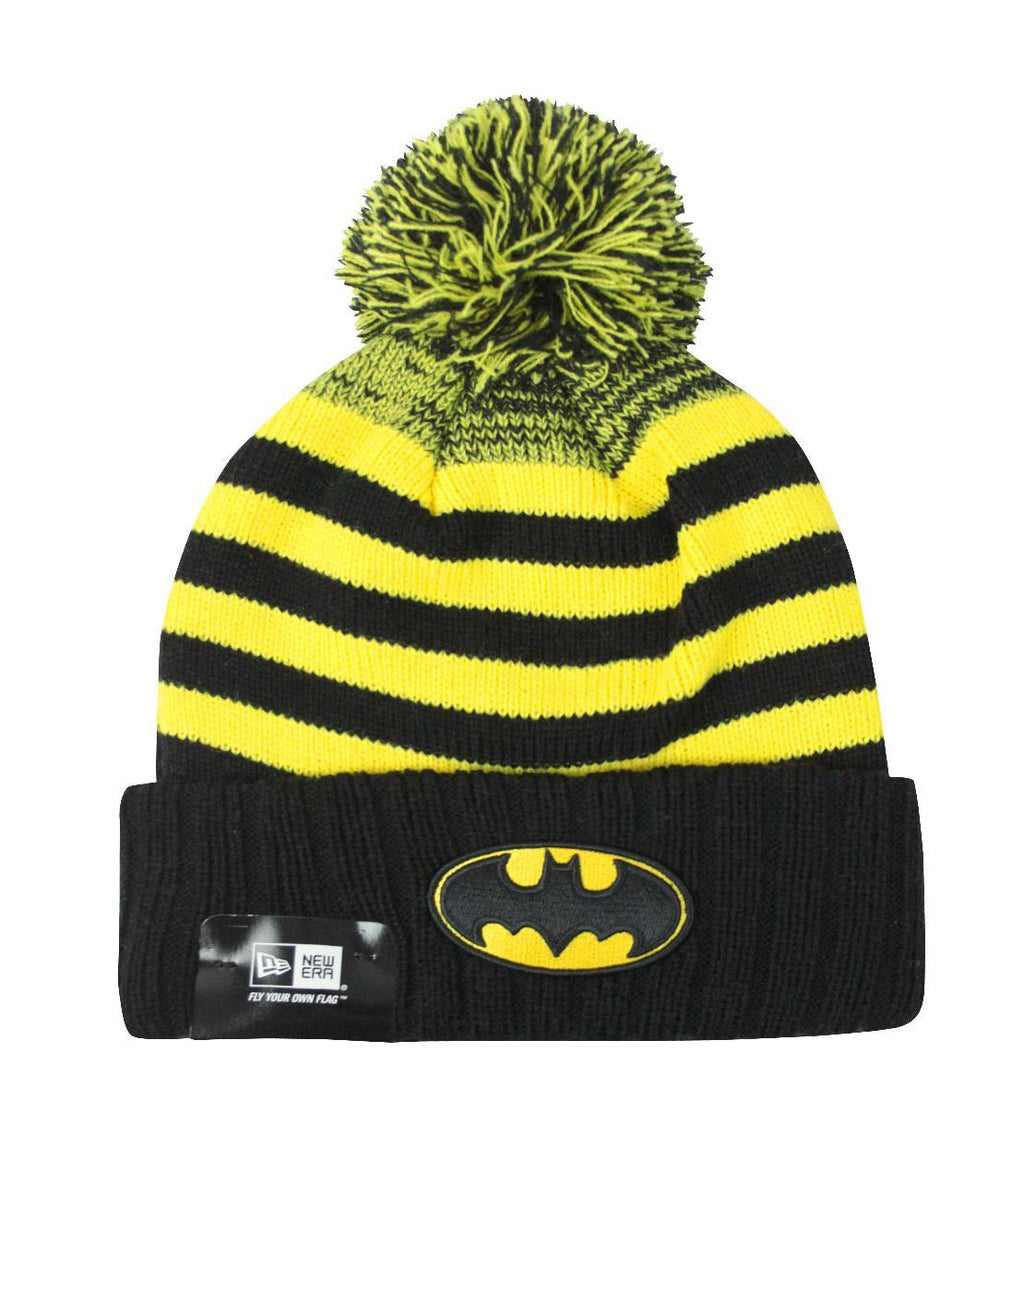 New Era Batman Snowfall Striped Knit Hat